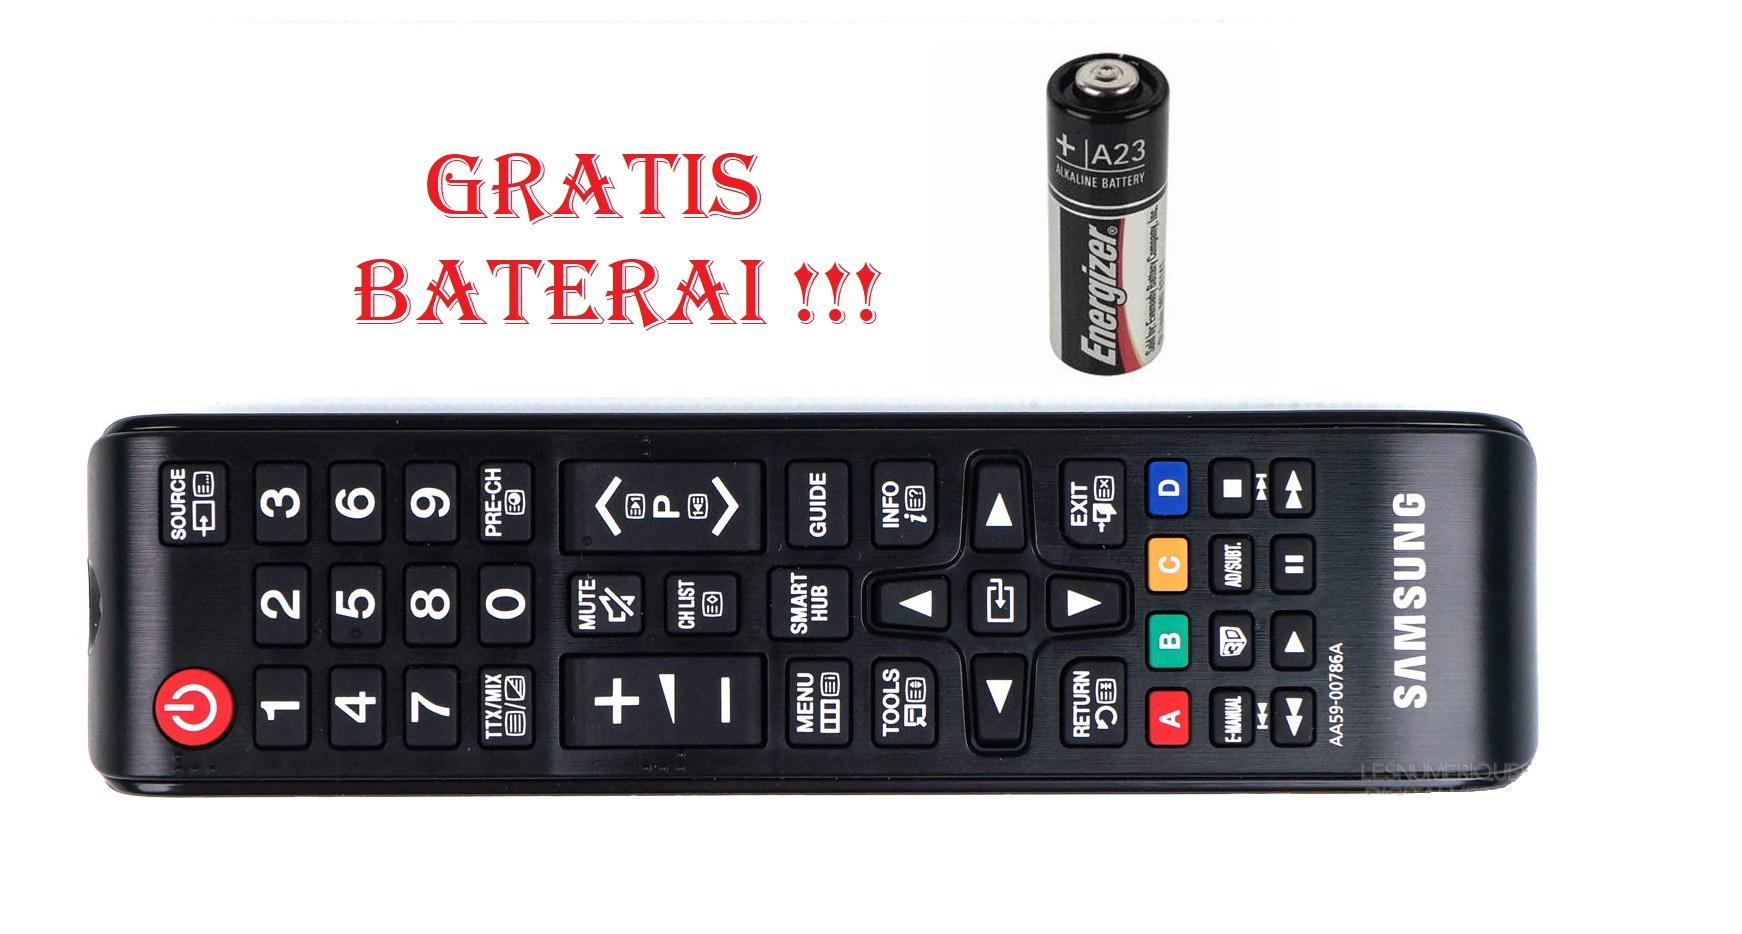 Remote TV Samsung Gratis Baterai Original 100% - Remot TV LCD LED Hitam_JSS13